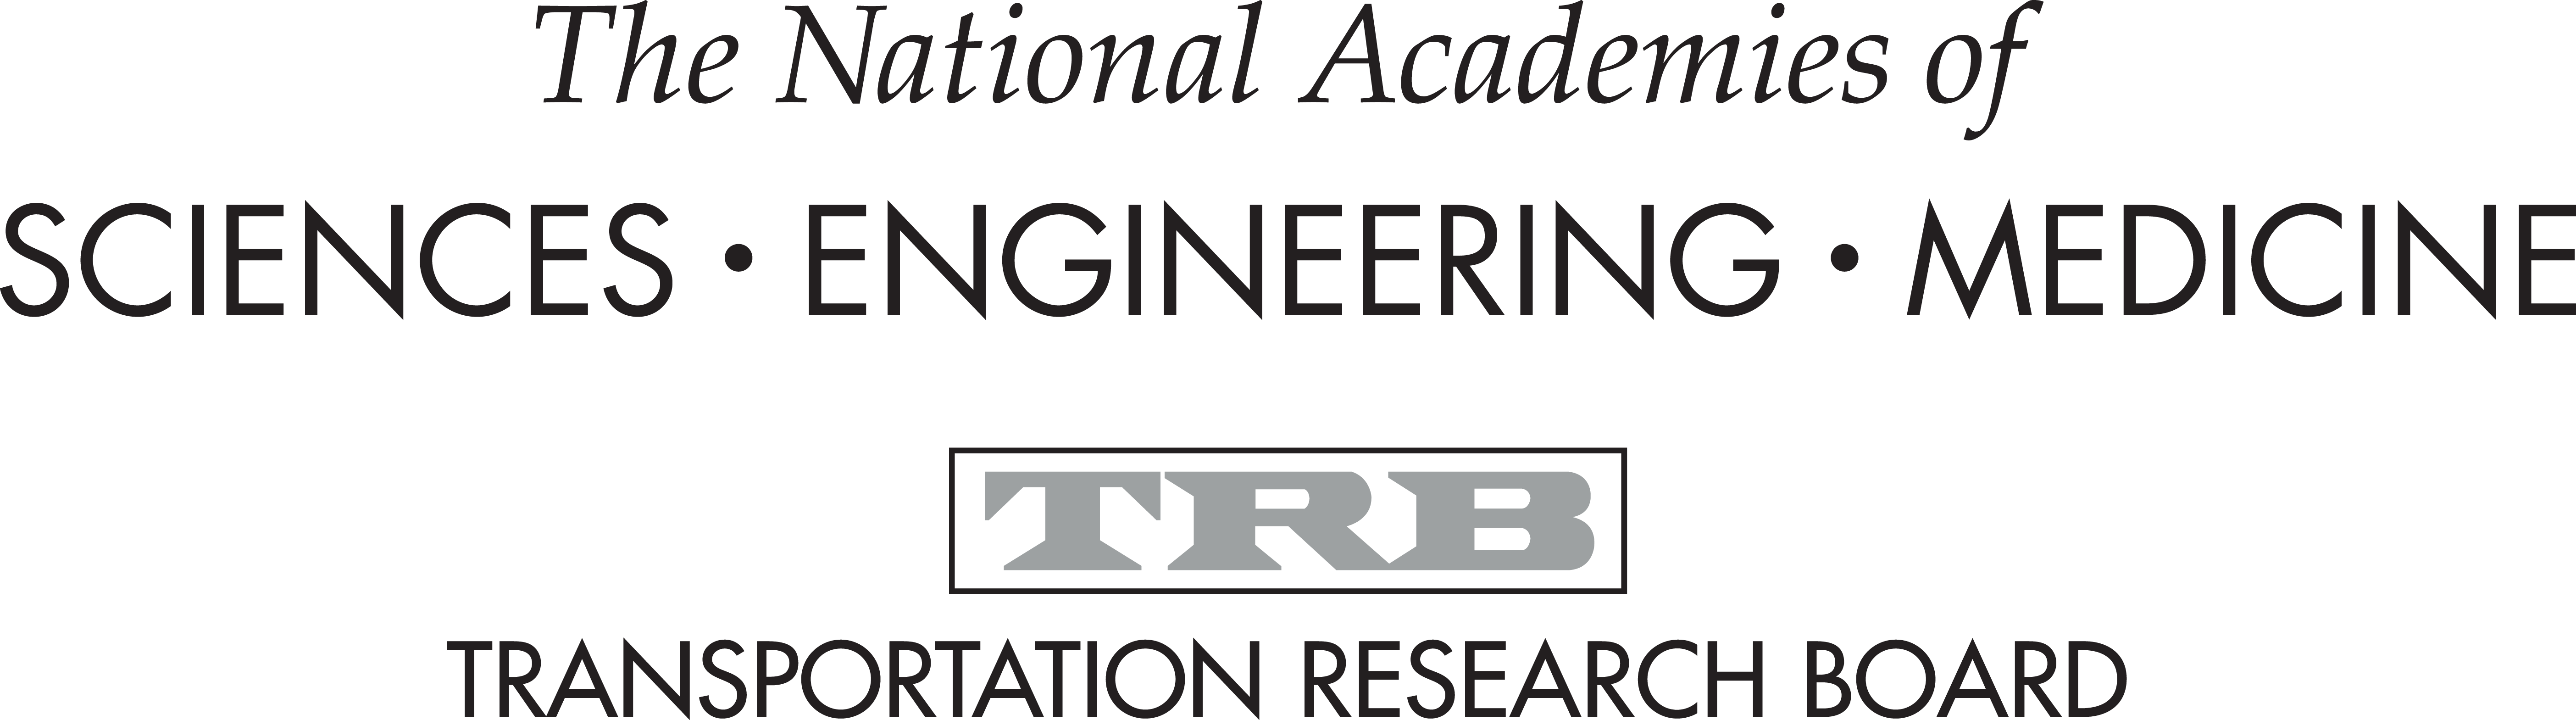 National Academies of Sciences, Engineering, and Medicine logo